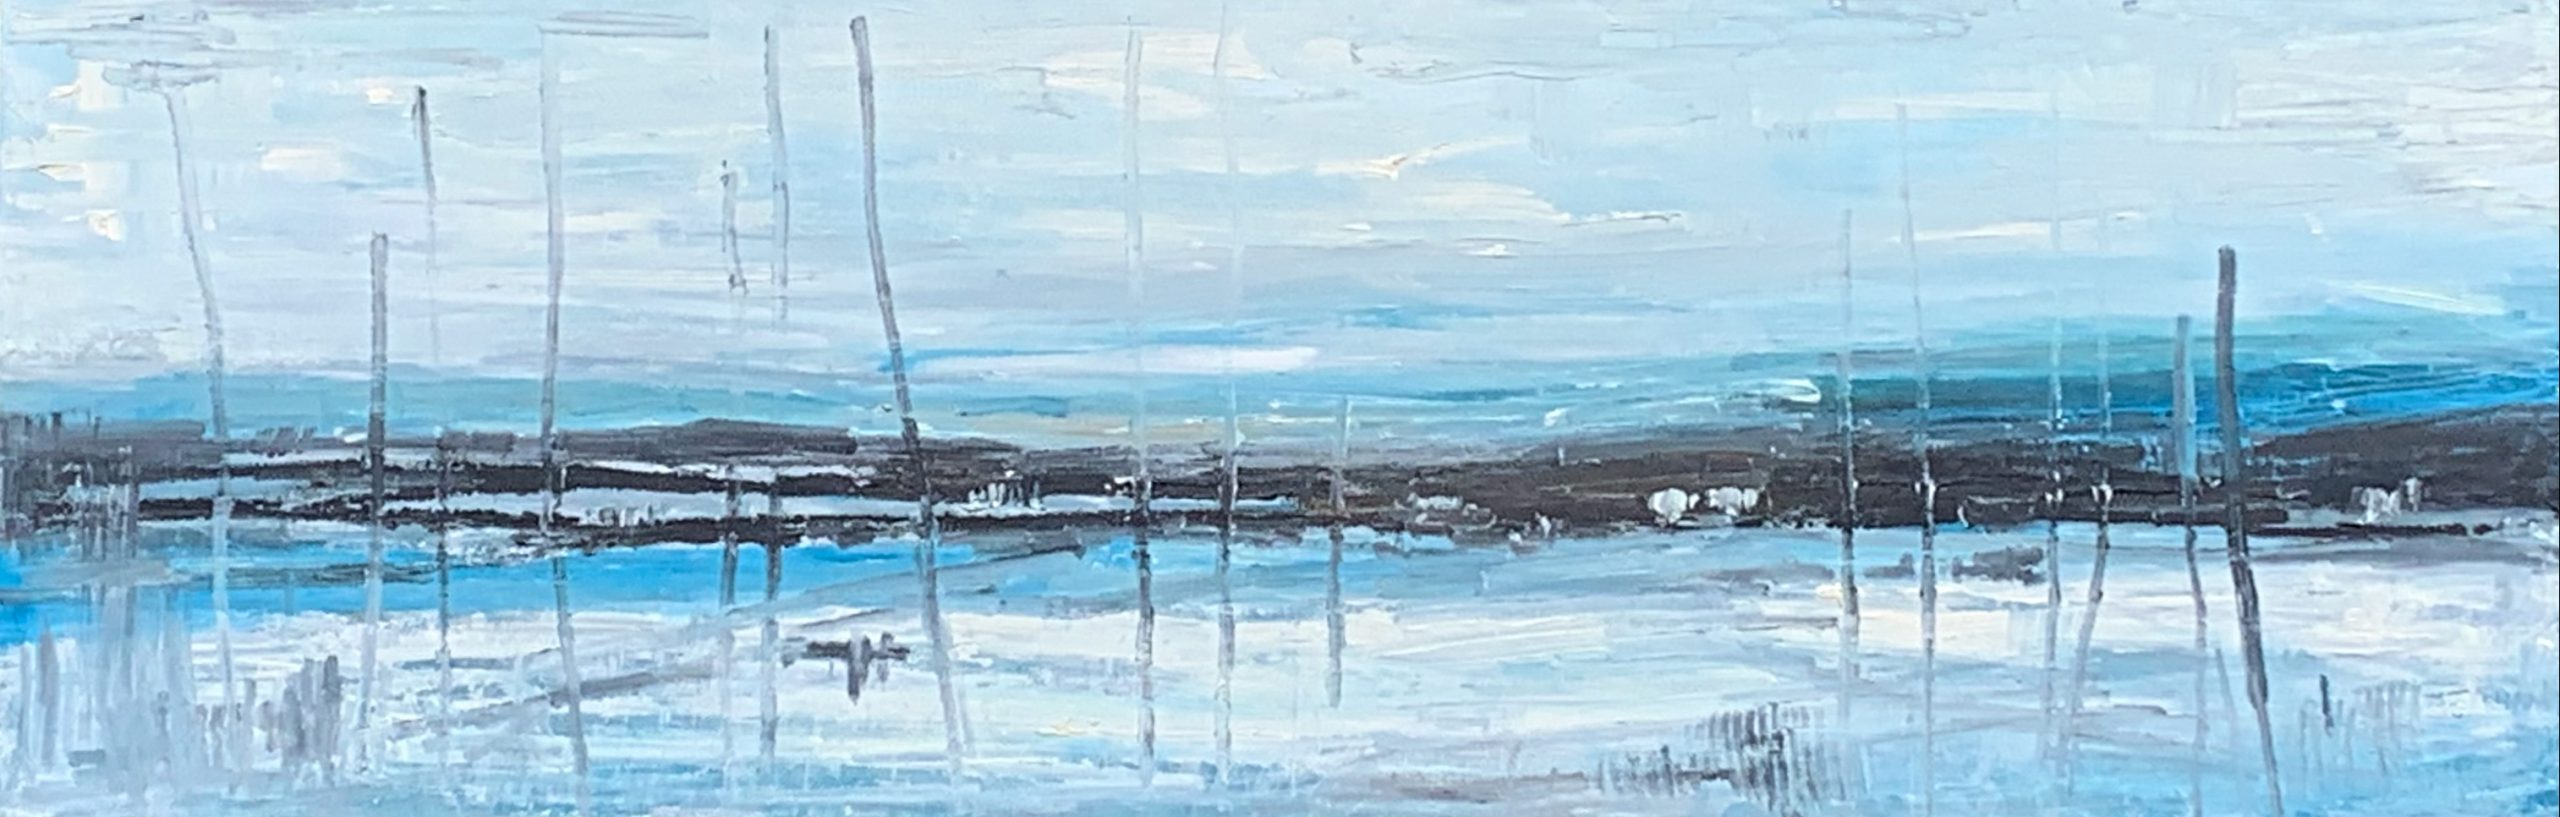 Quiet of Winter, acrylic landscape painting by Gina Sarro | Effusion Art Gallery + Cast Glass Studio, Invermere BC